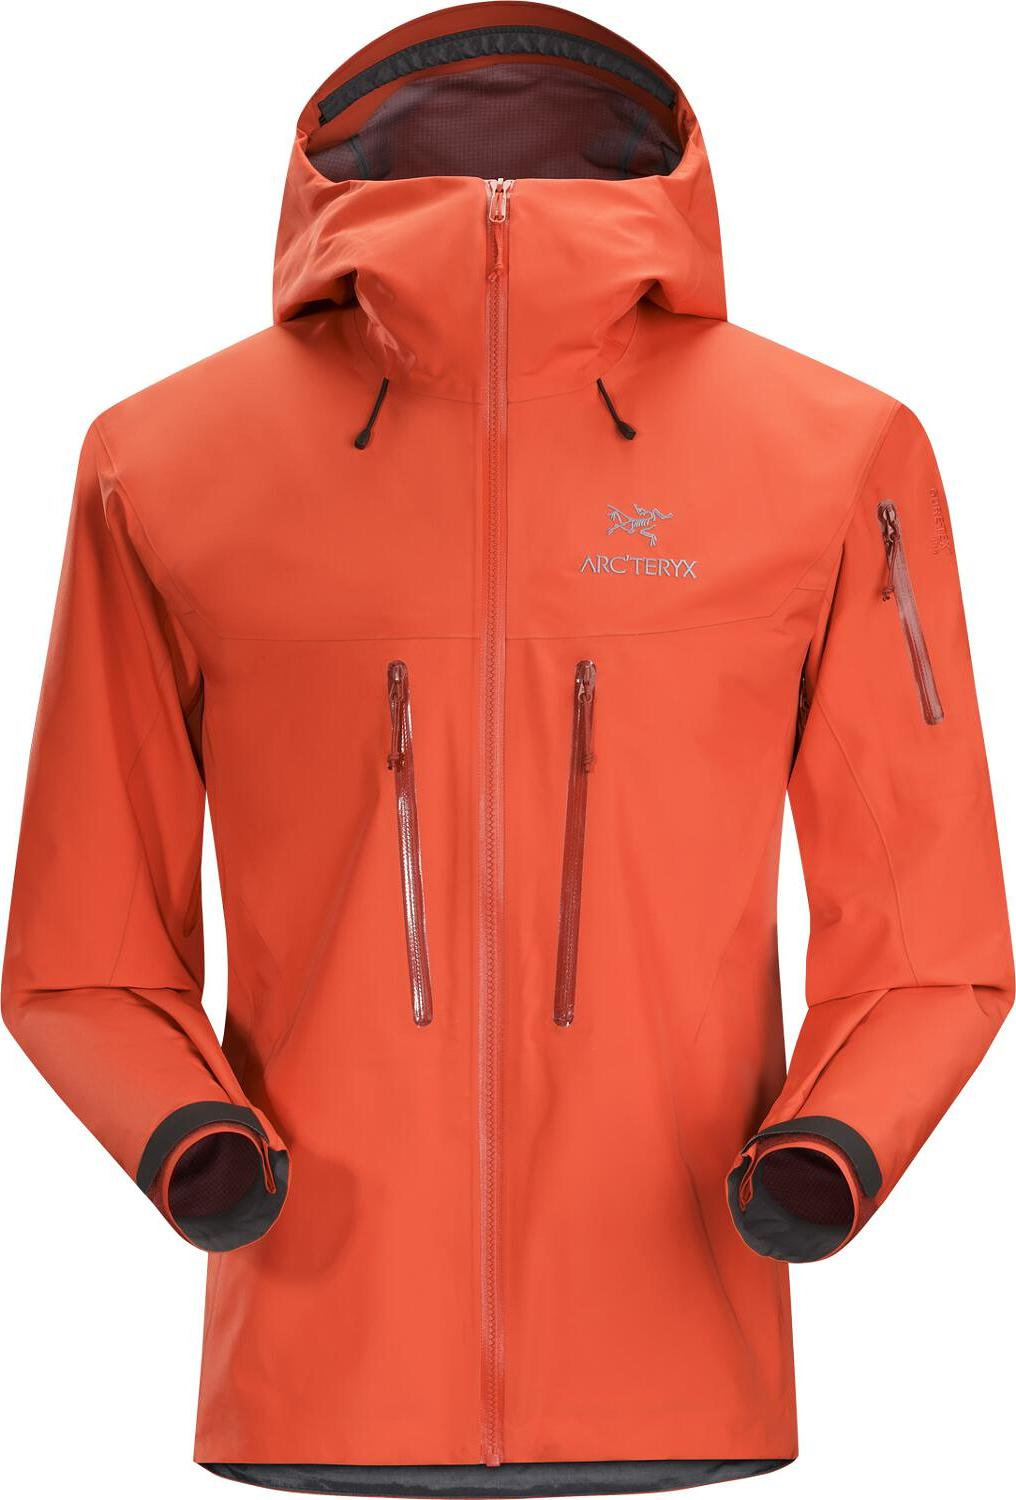 d239fdc0 Arc'teryx Alpha Sv Jacket - Men's | Altitude Sports